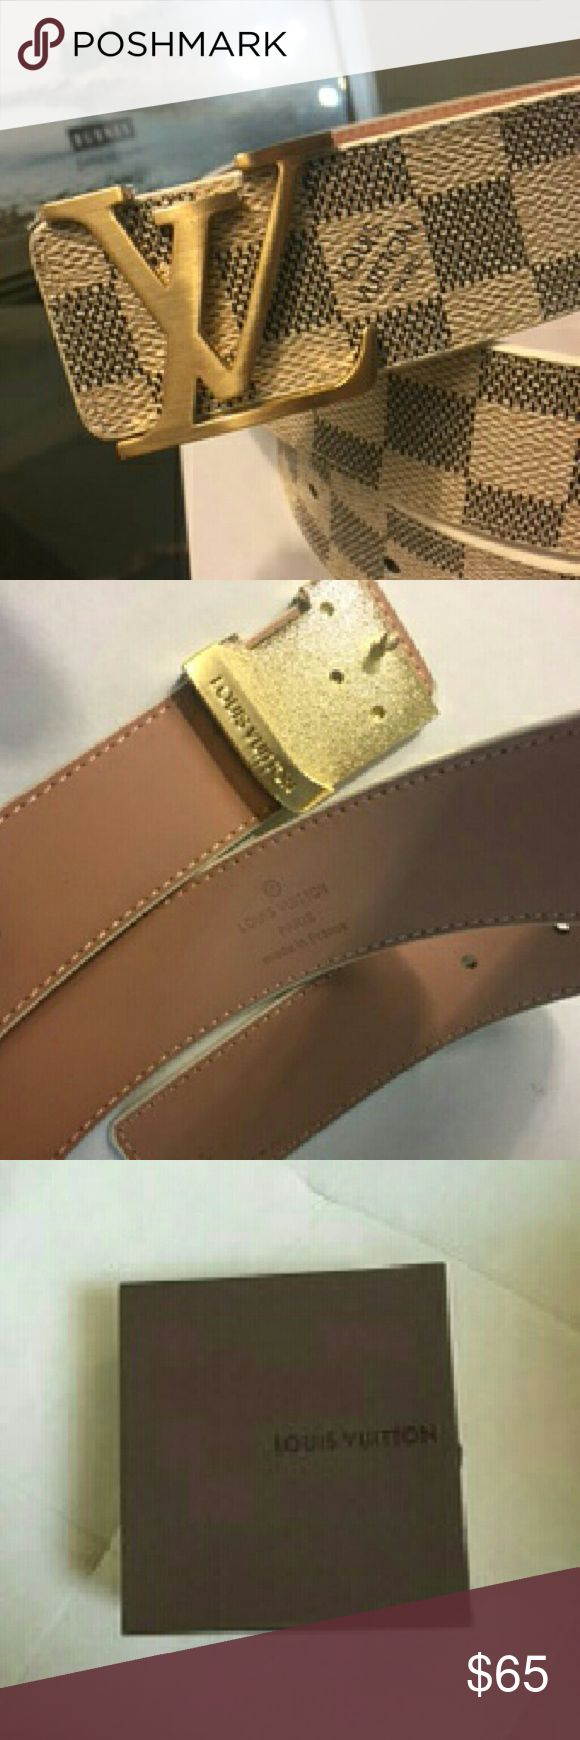 Belt, gold buckle. Cream &black belt Belt ,real leather not name , cream white & black belt with gold buckle , great quality ,box and dust cloth included  .Really nice gift for him or for you Accessories Belts